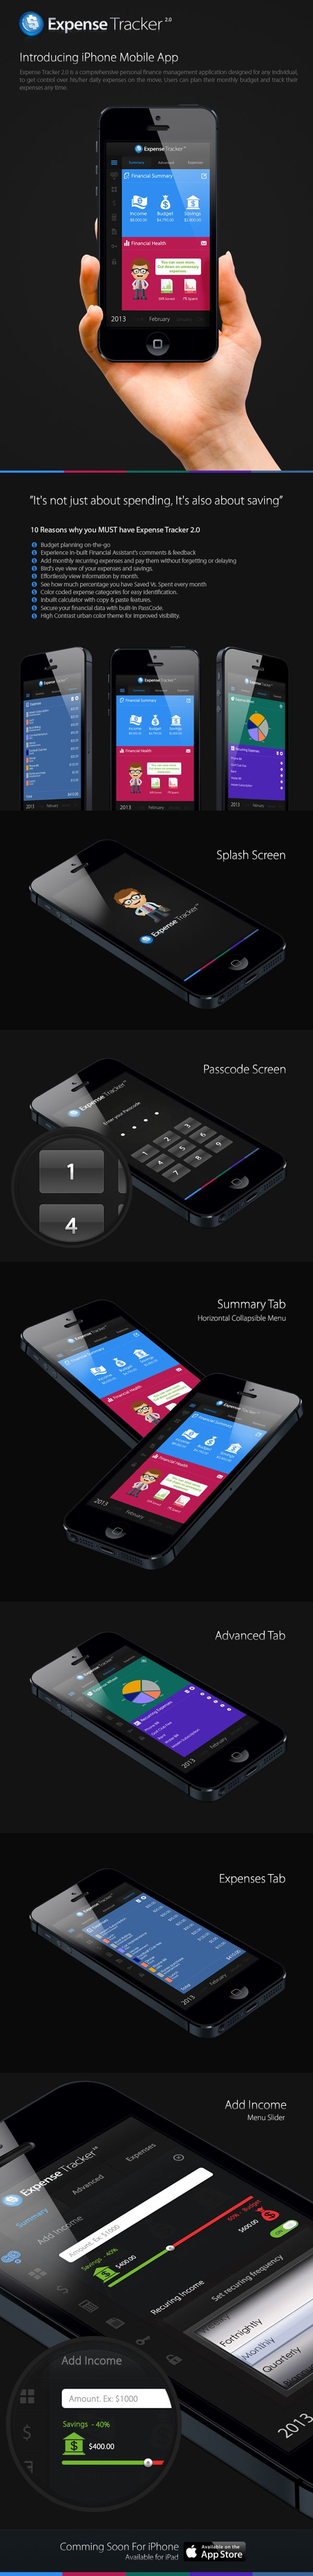 Expense Tracker 2.0 - iPhone App by ceffectz Designs, via Behance